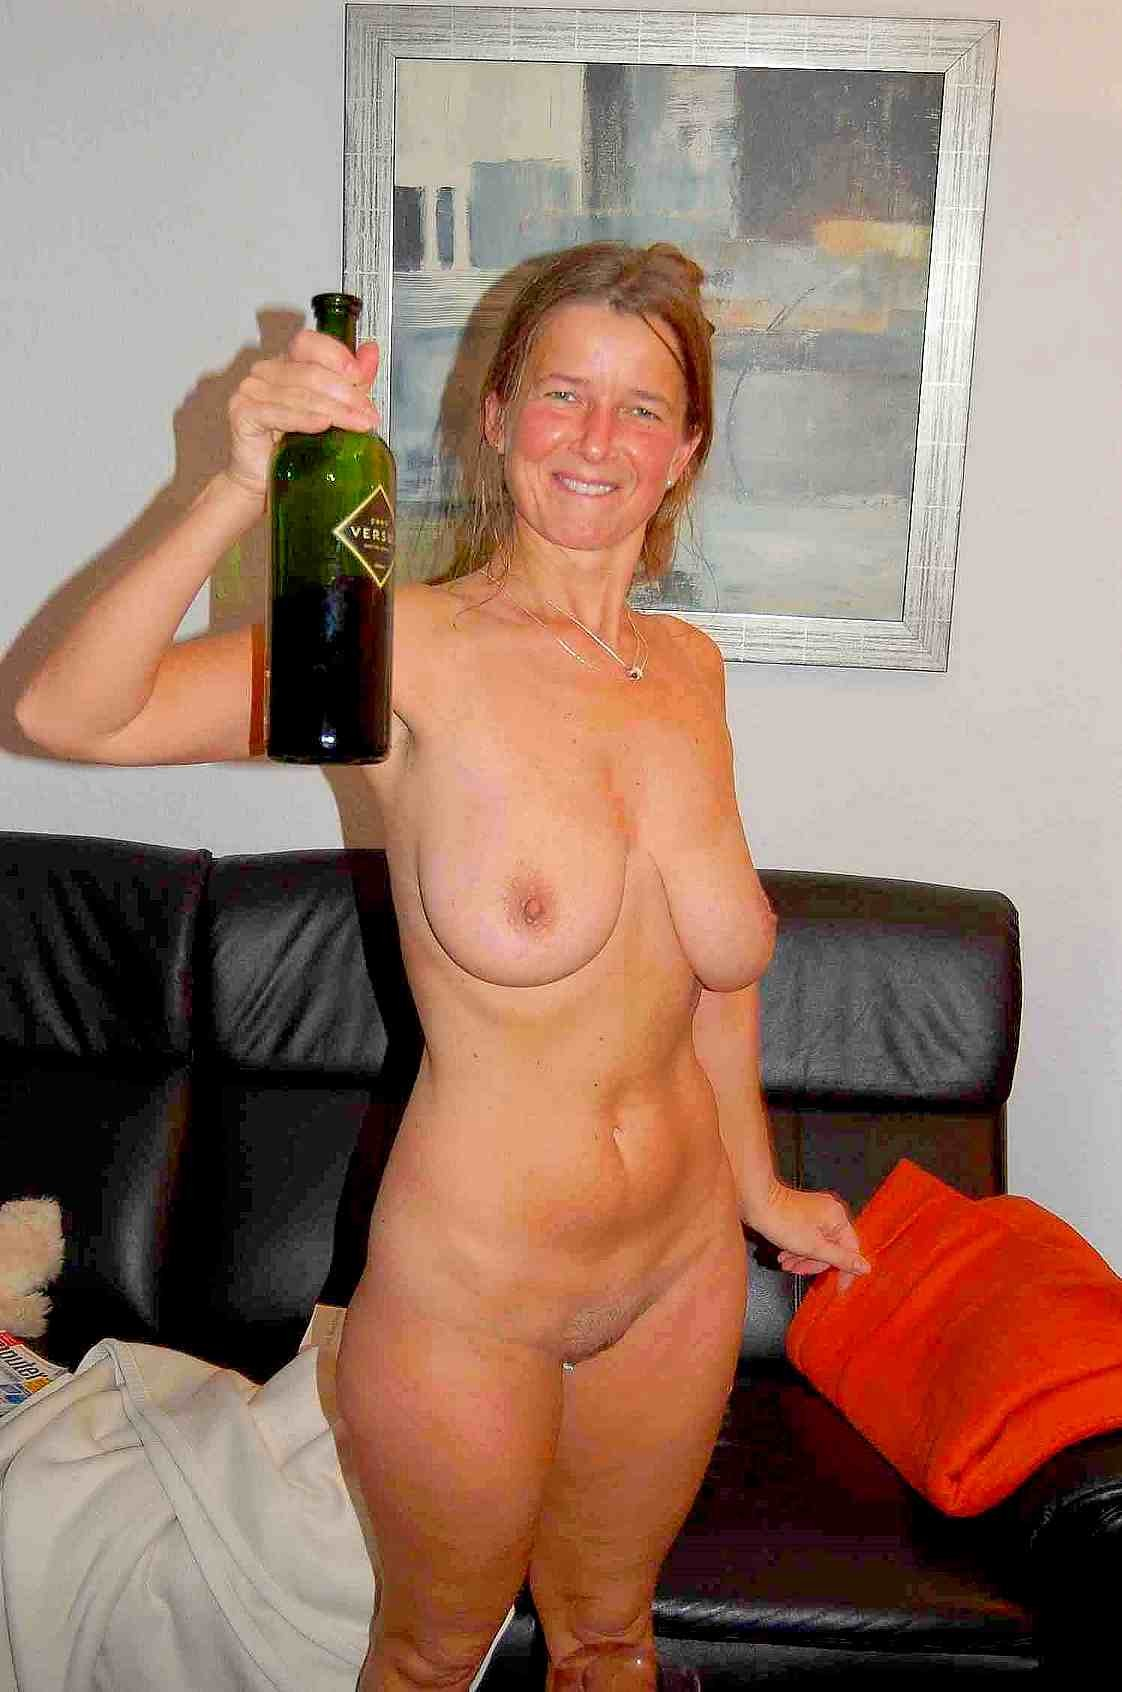 Nude At Home mature nude at home | motherless ™